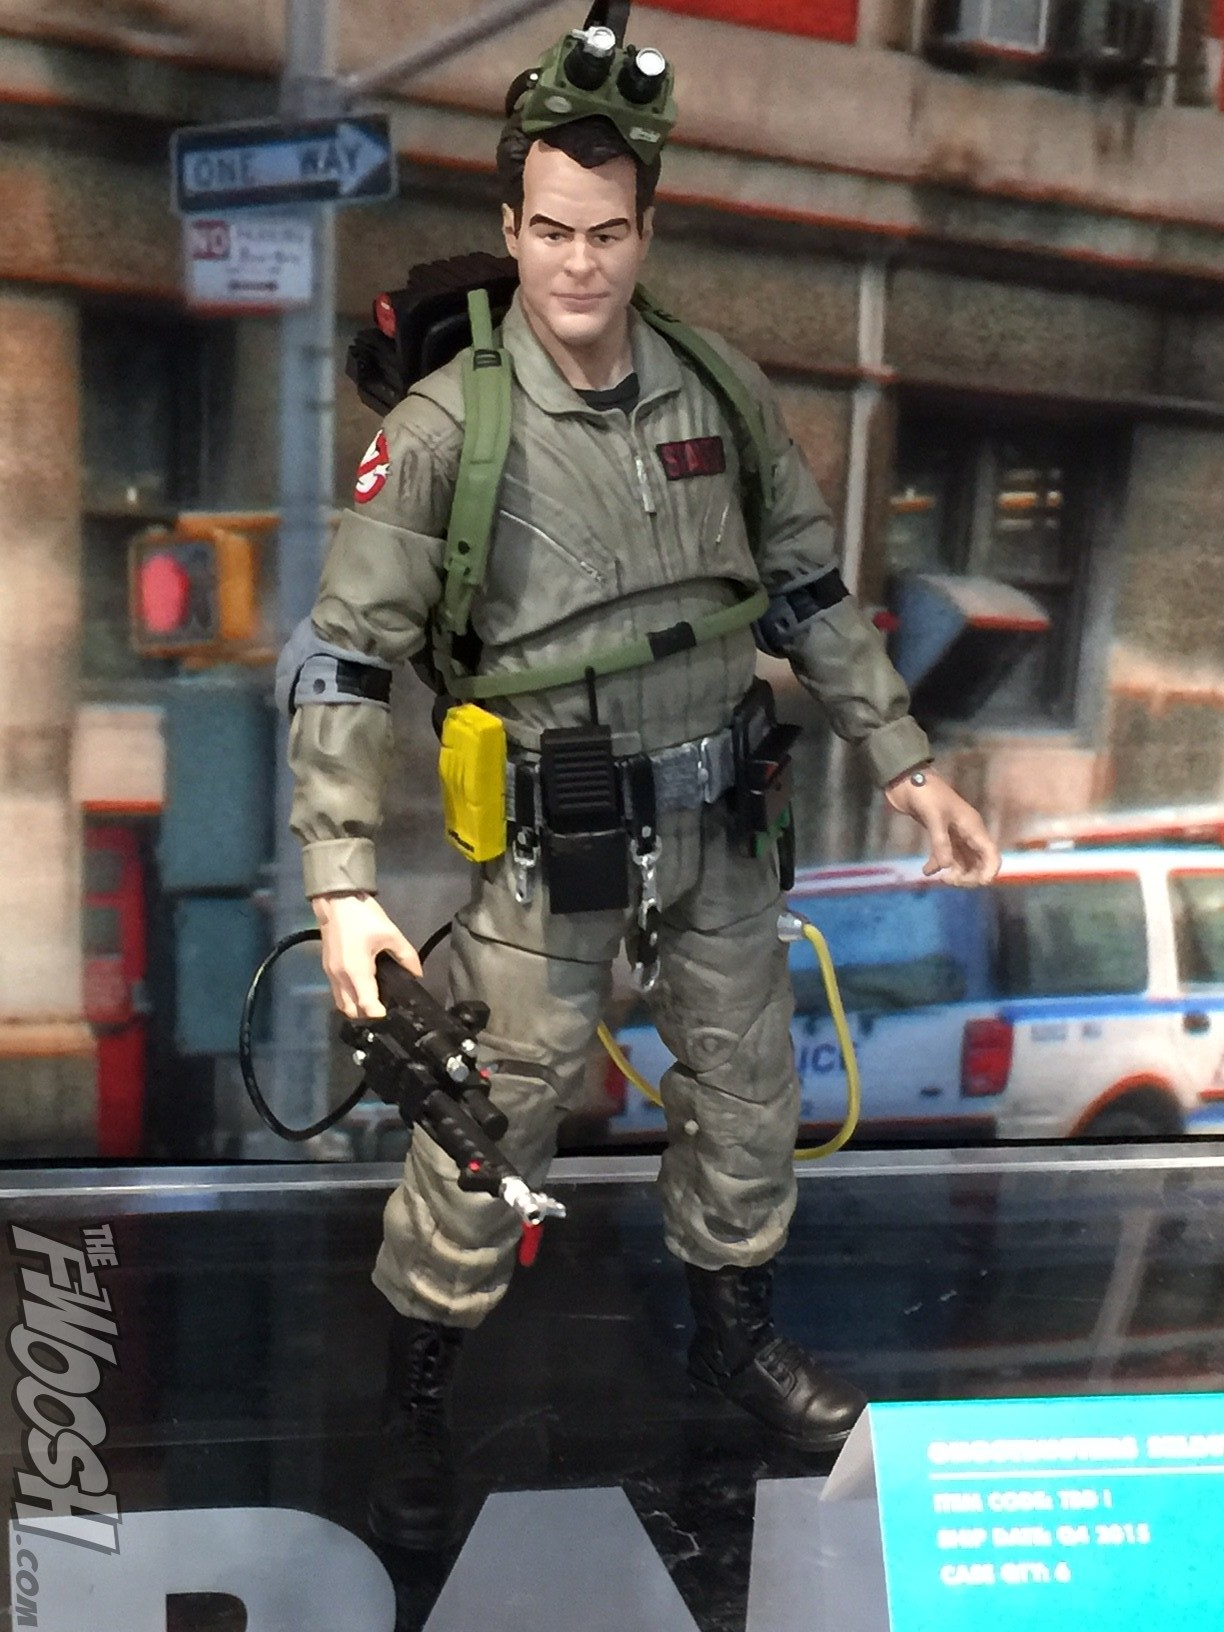 http://i0.wp.com/thefwoosh.com/wp-content/uploads/2015/02/Diamond-Select-Ghostbusters-2-e1423927157388.jpg